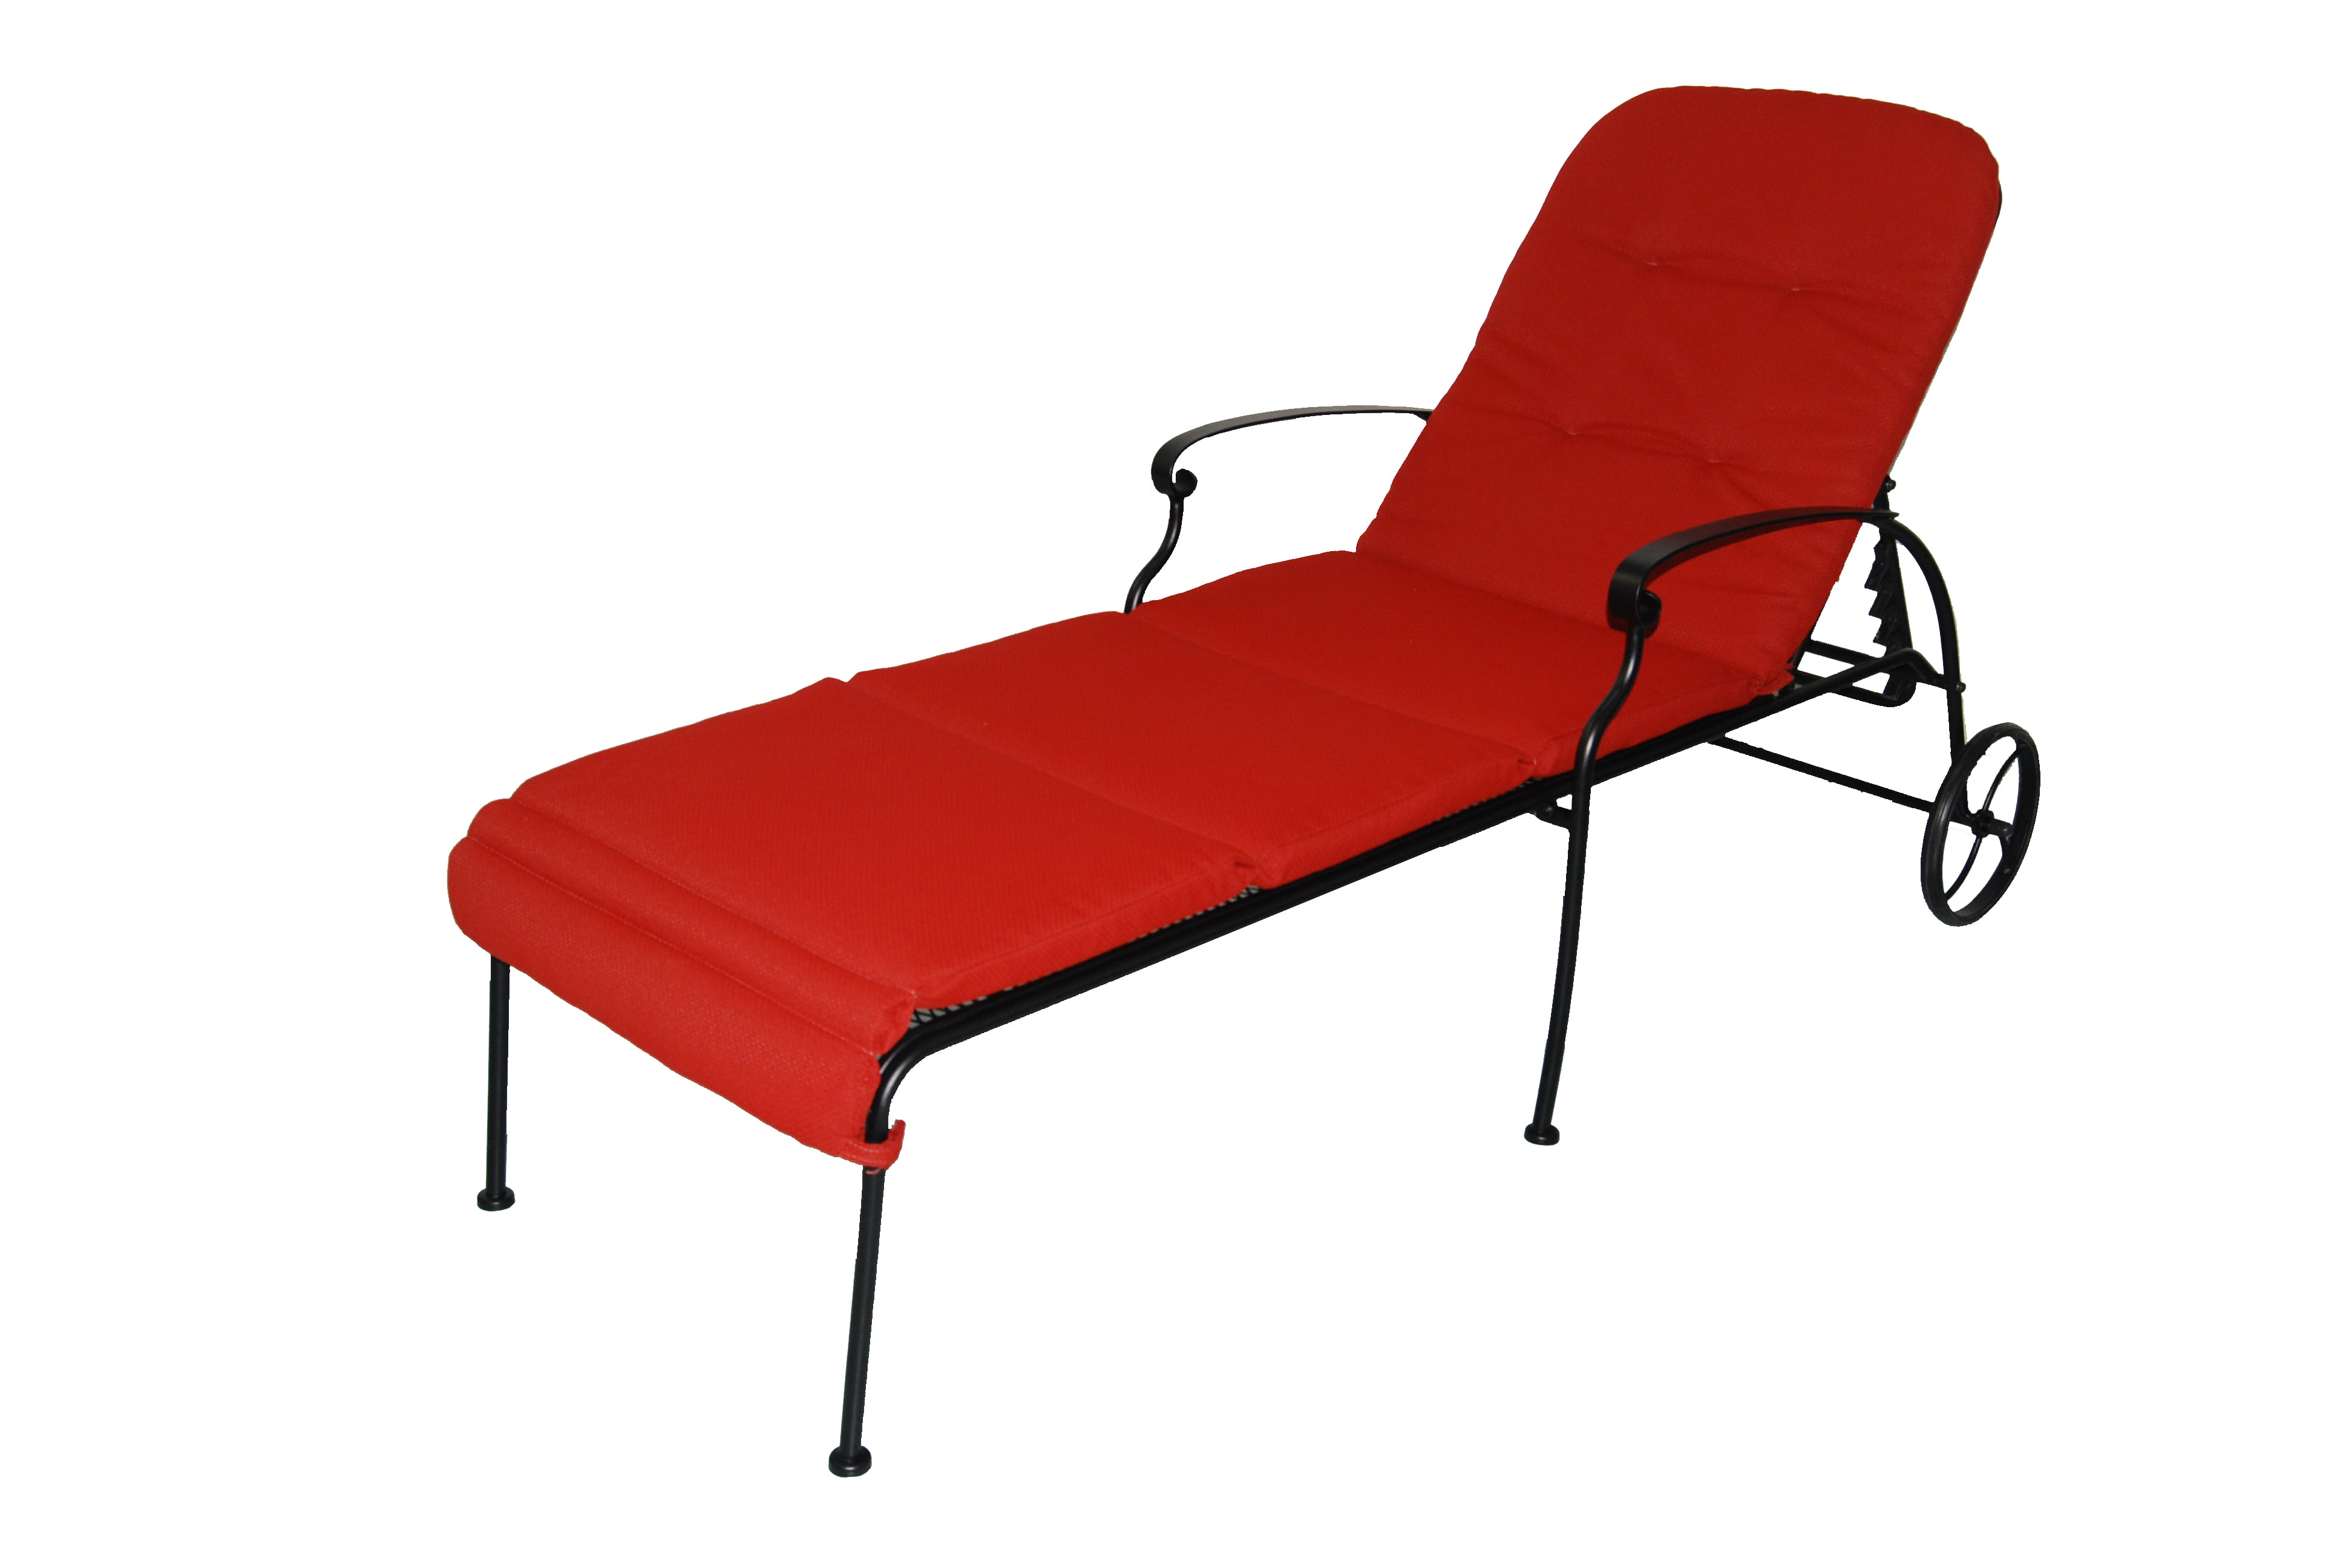 Better Homes Gardens Clayton Court Chaise Lounge With Wheels Red Walmart Com Walmart Com